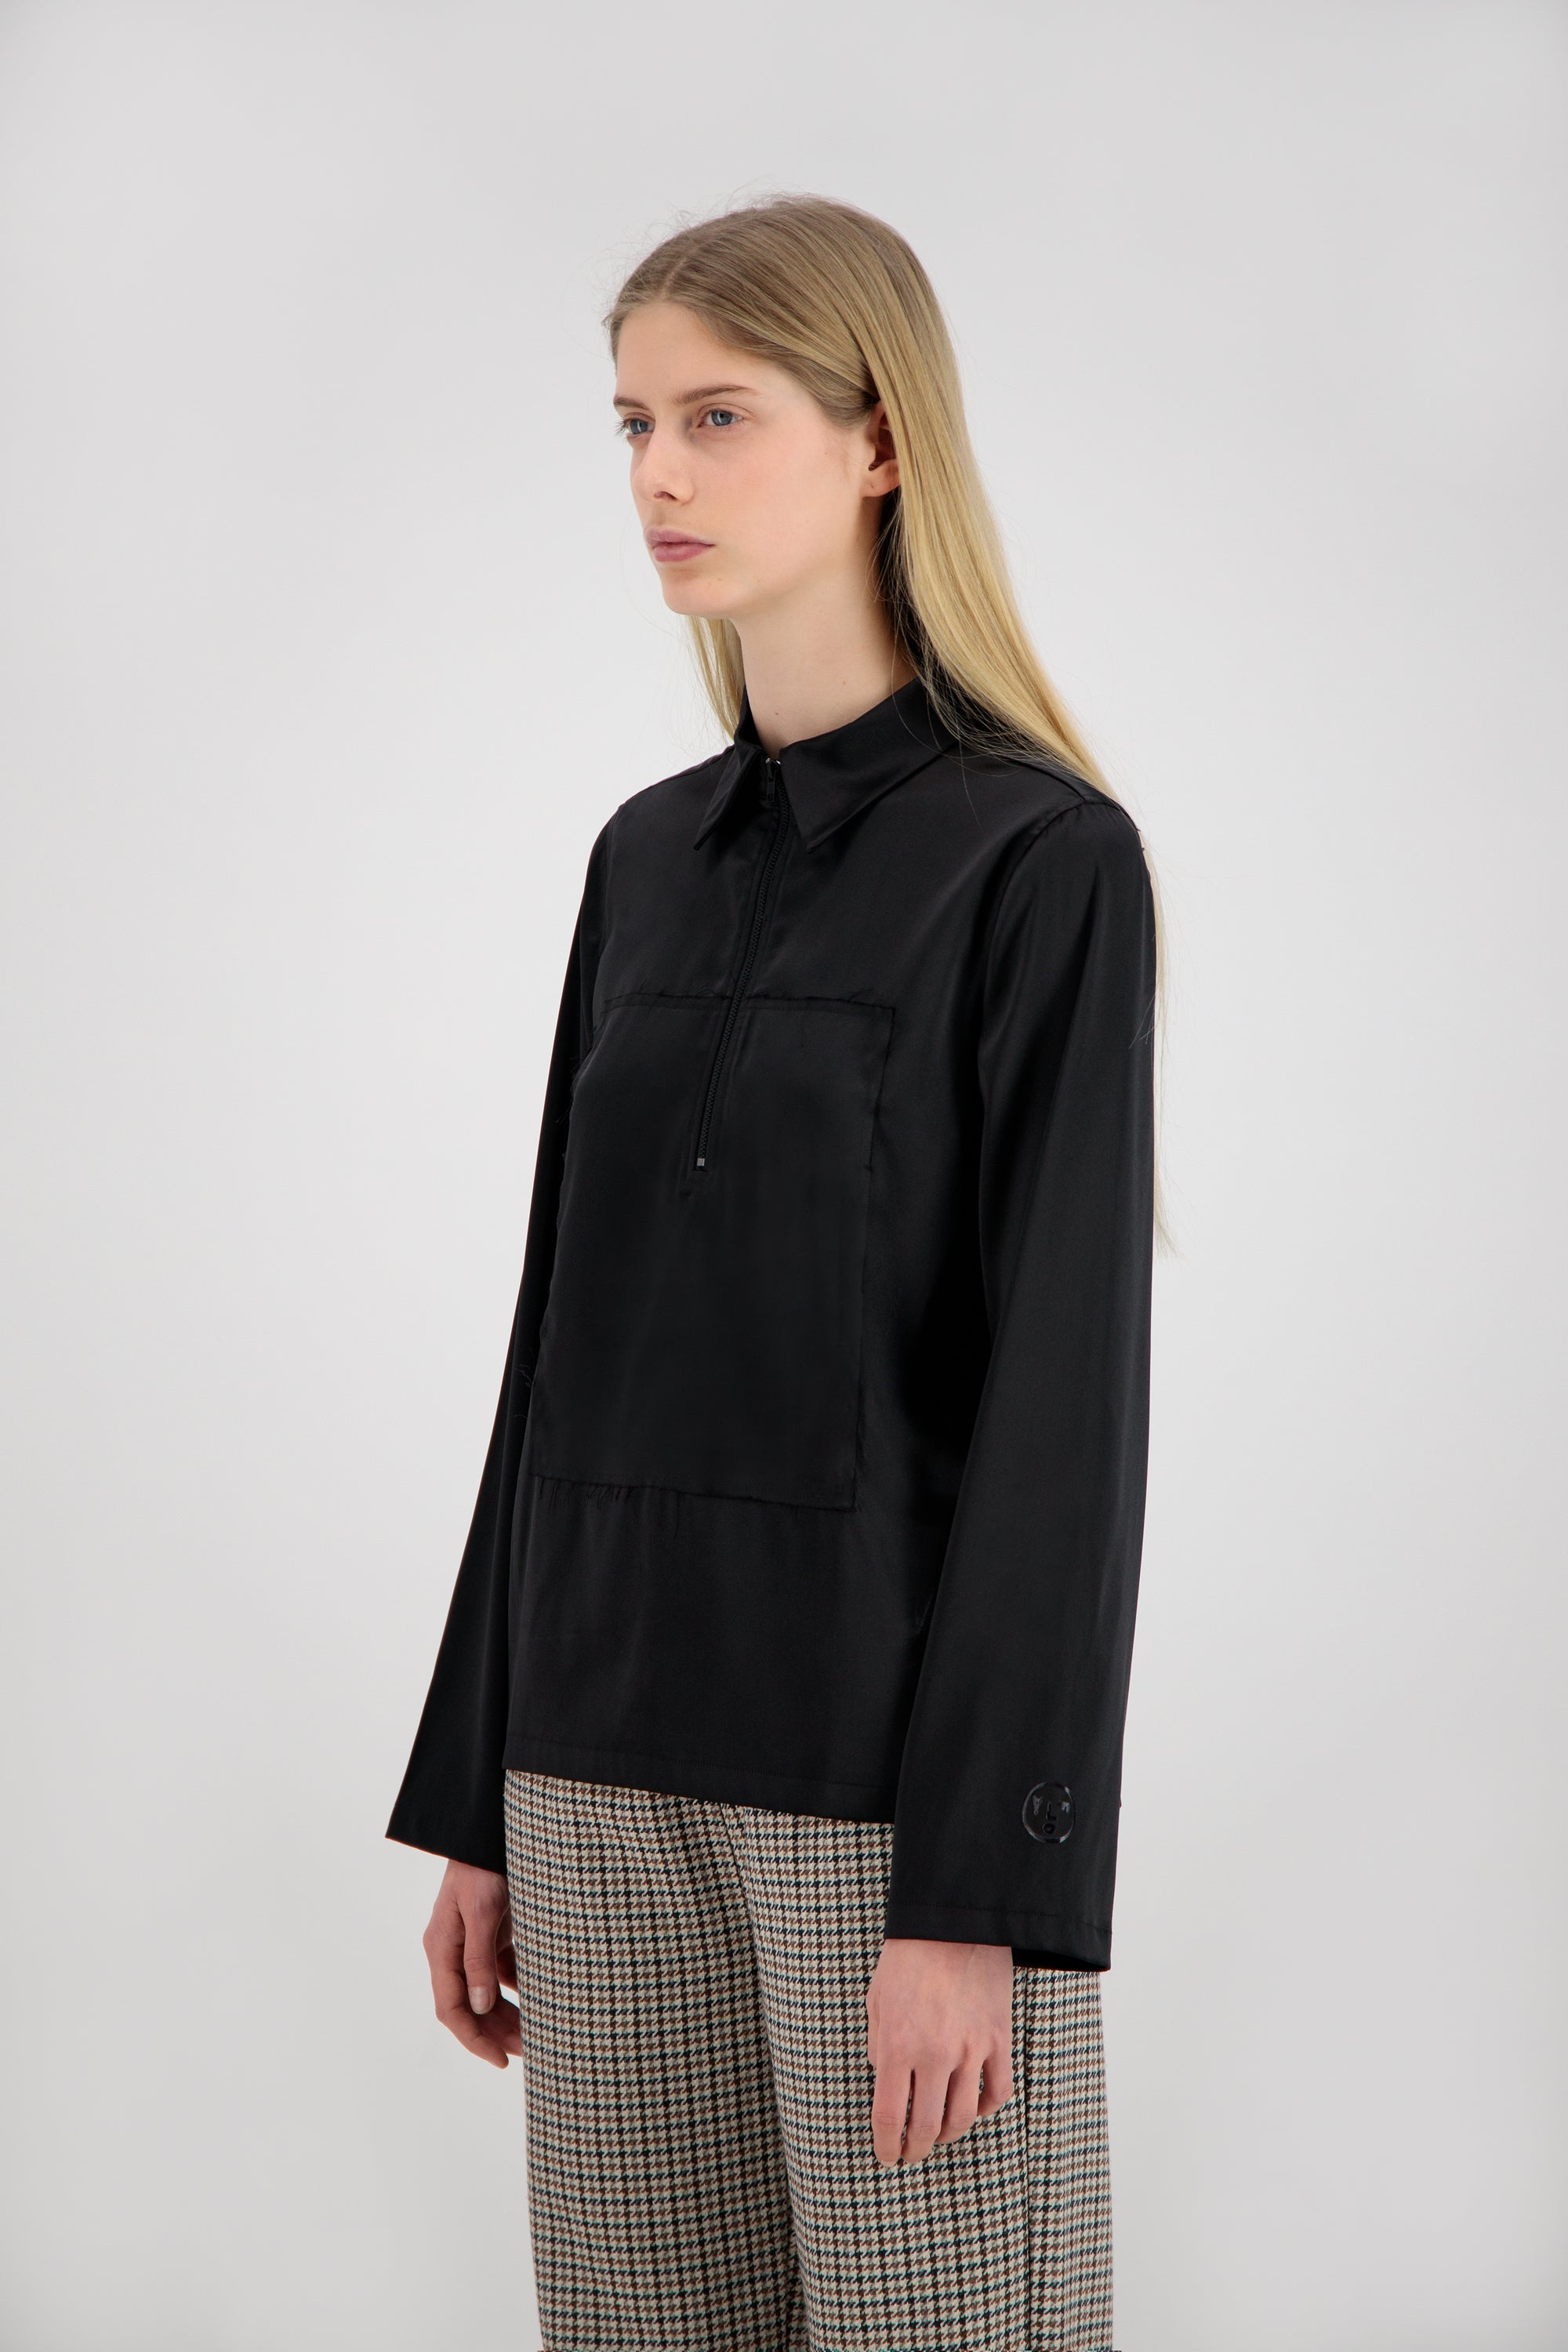 ØLÅF Women's Zip Shirt <br>Black